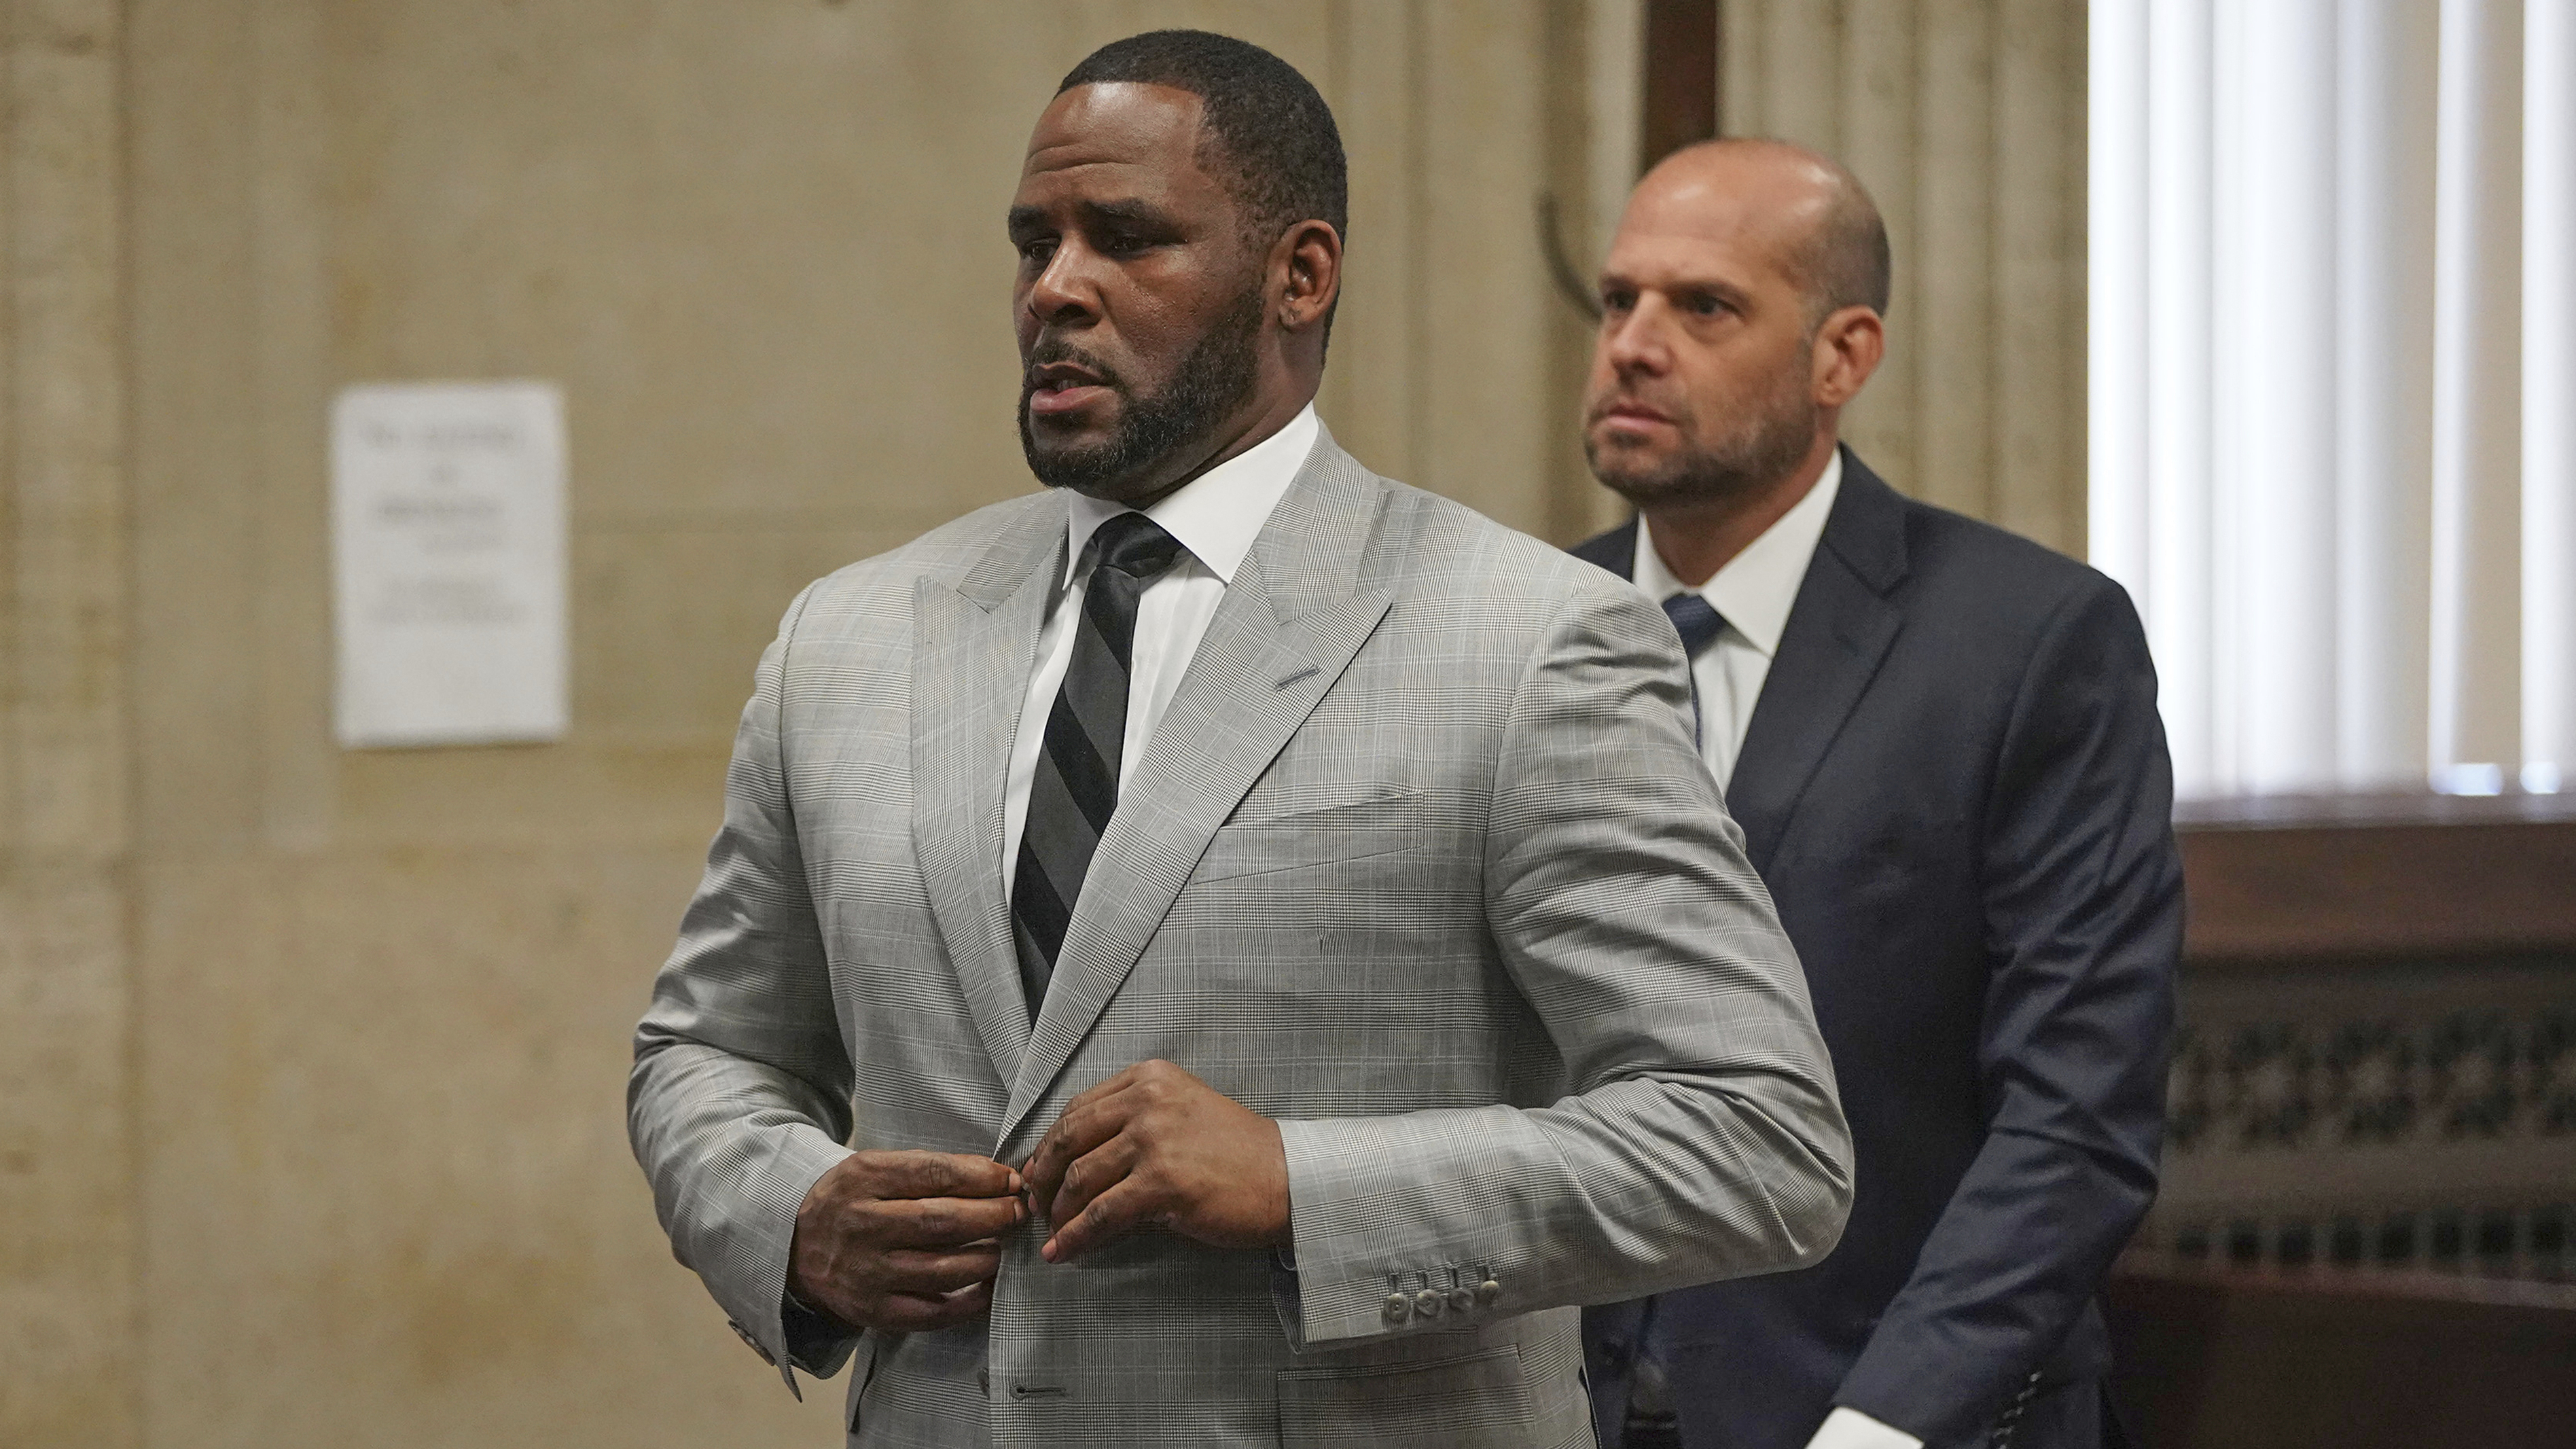 Avenatti: R. Kelly paid $2M to silence girl he assaulted